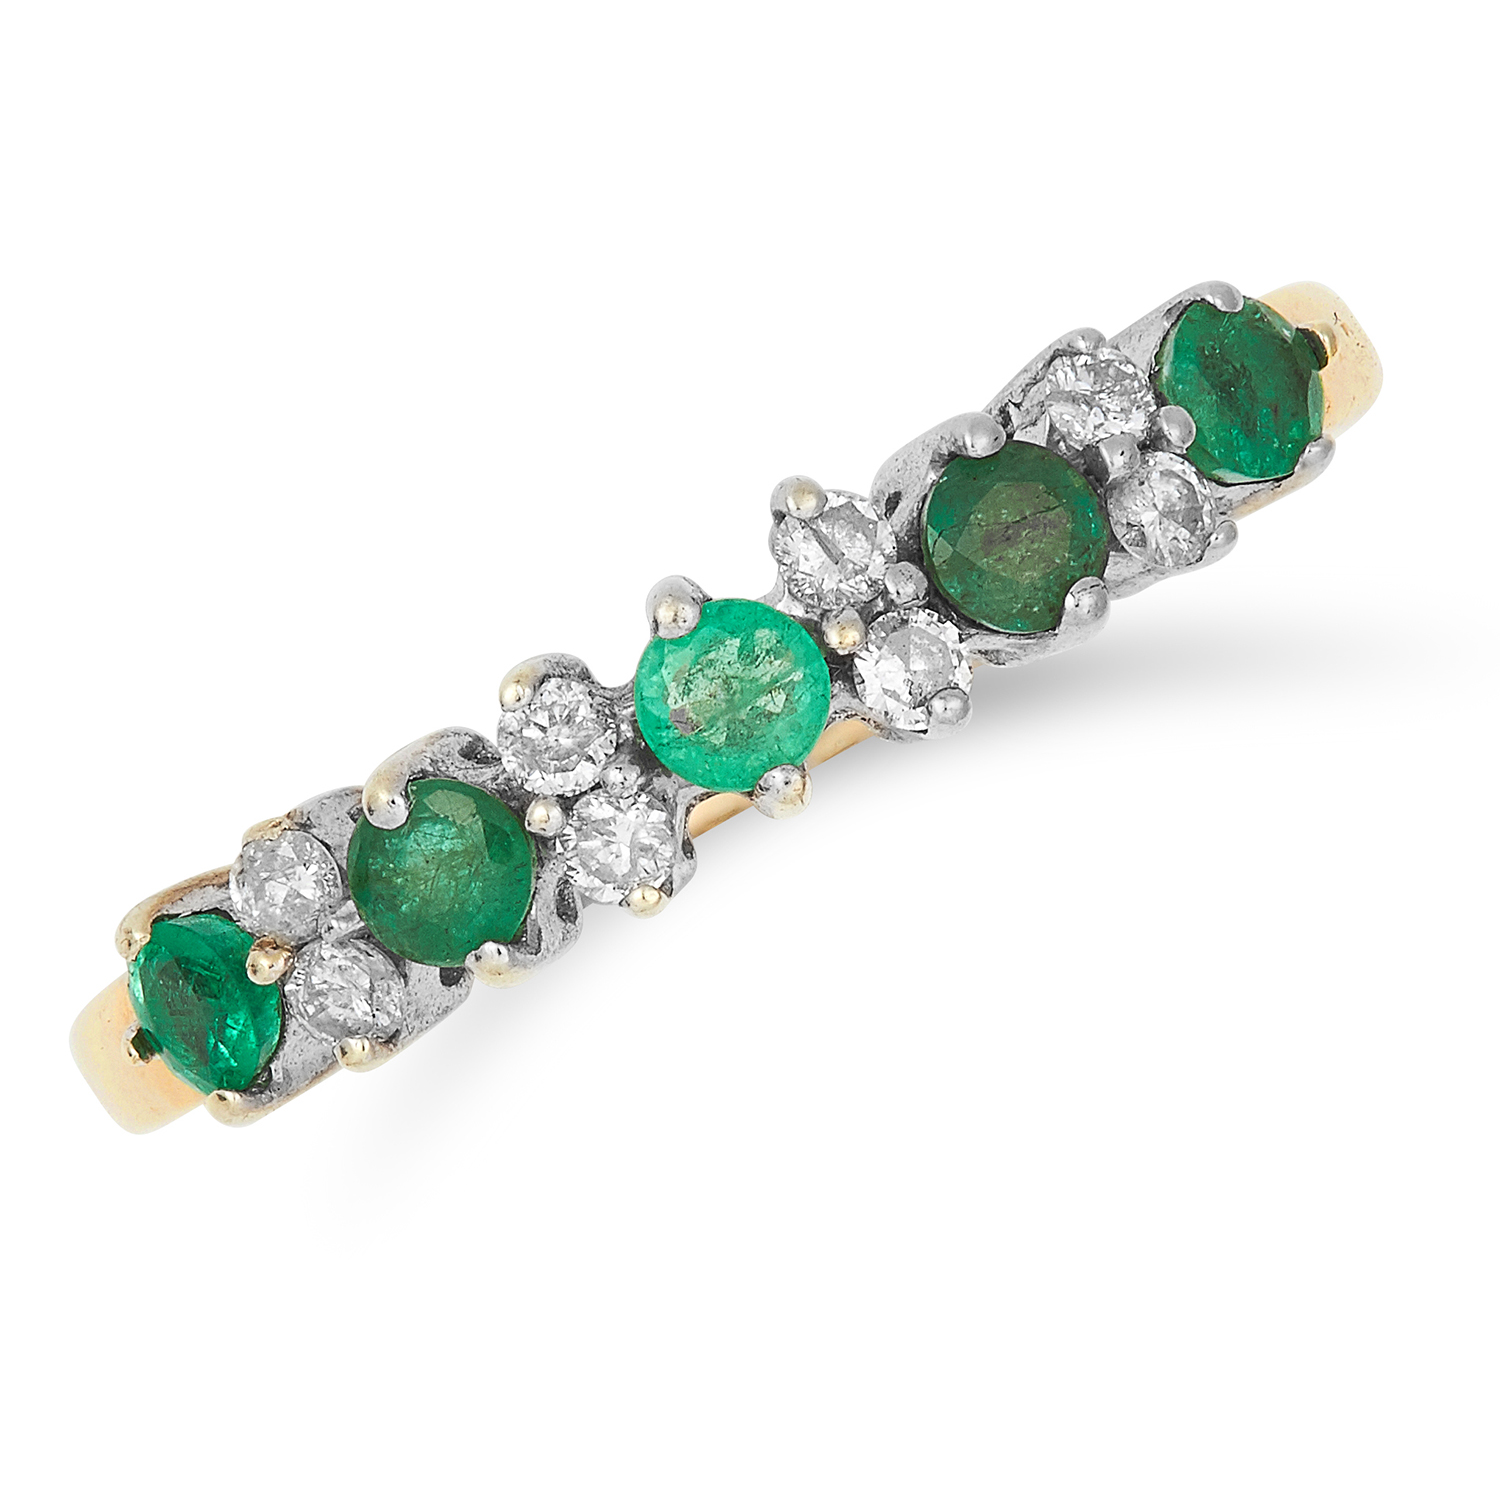 Los 37 - EMERALD AND DIAMOND RING set with alternating round cut emeralds and diamonds, size Q / 8, 2.2g.